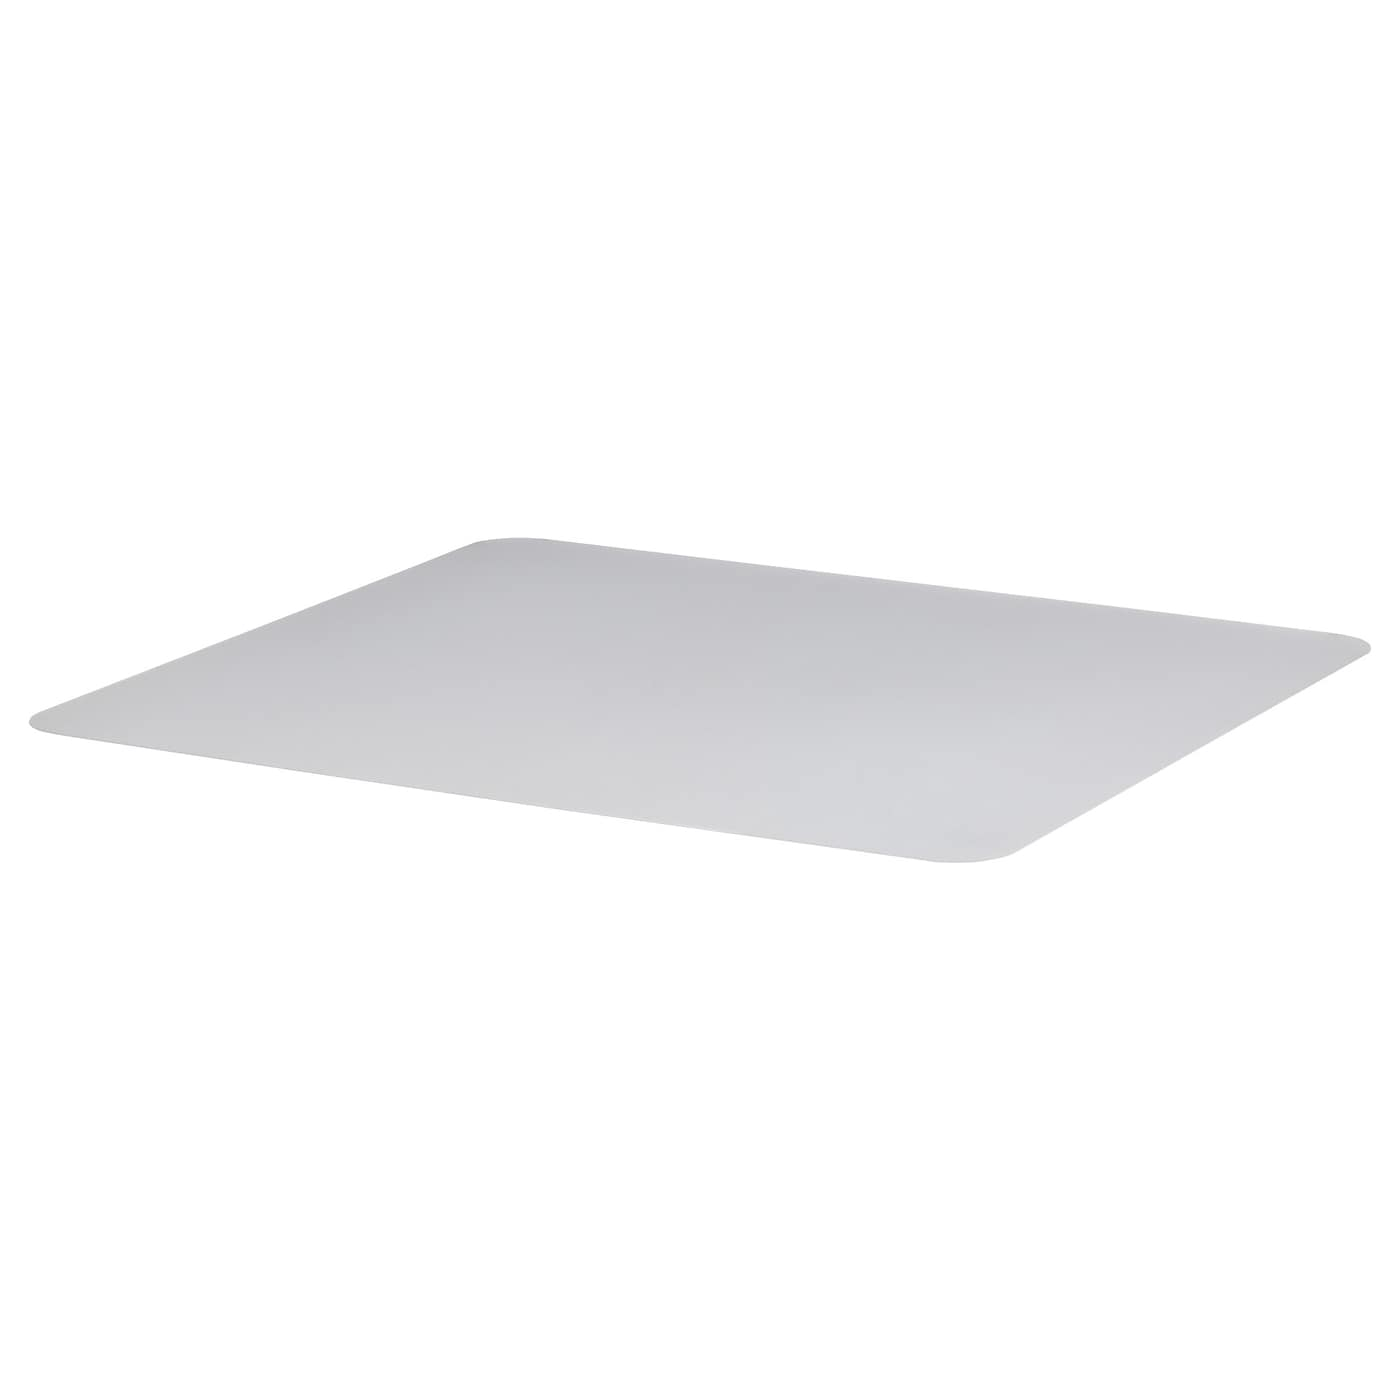 Picture of: Kolon Floor Protector 120×100 Cm Ikea